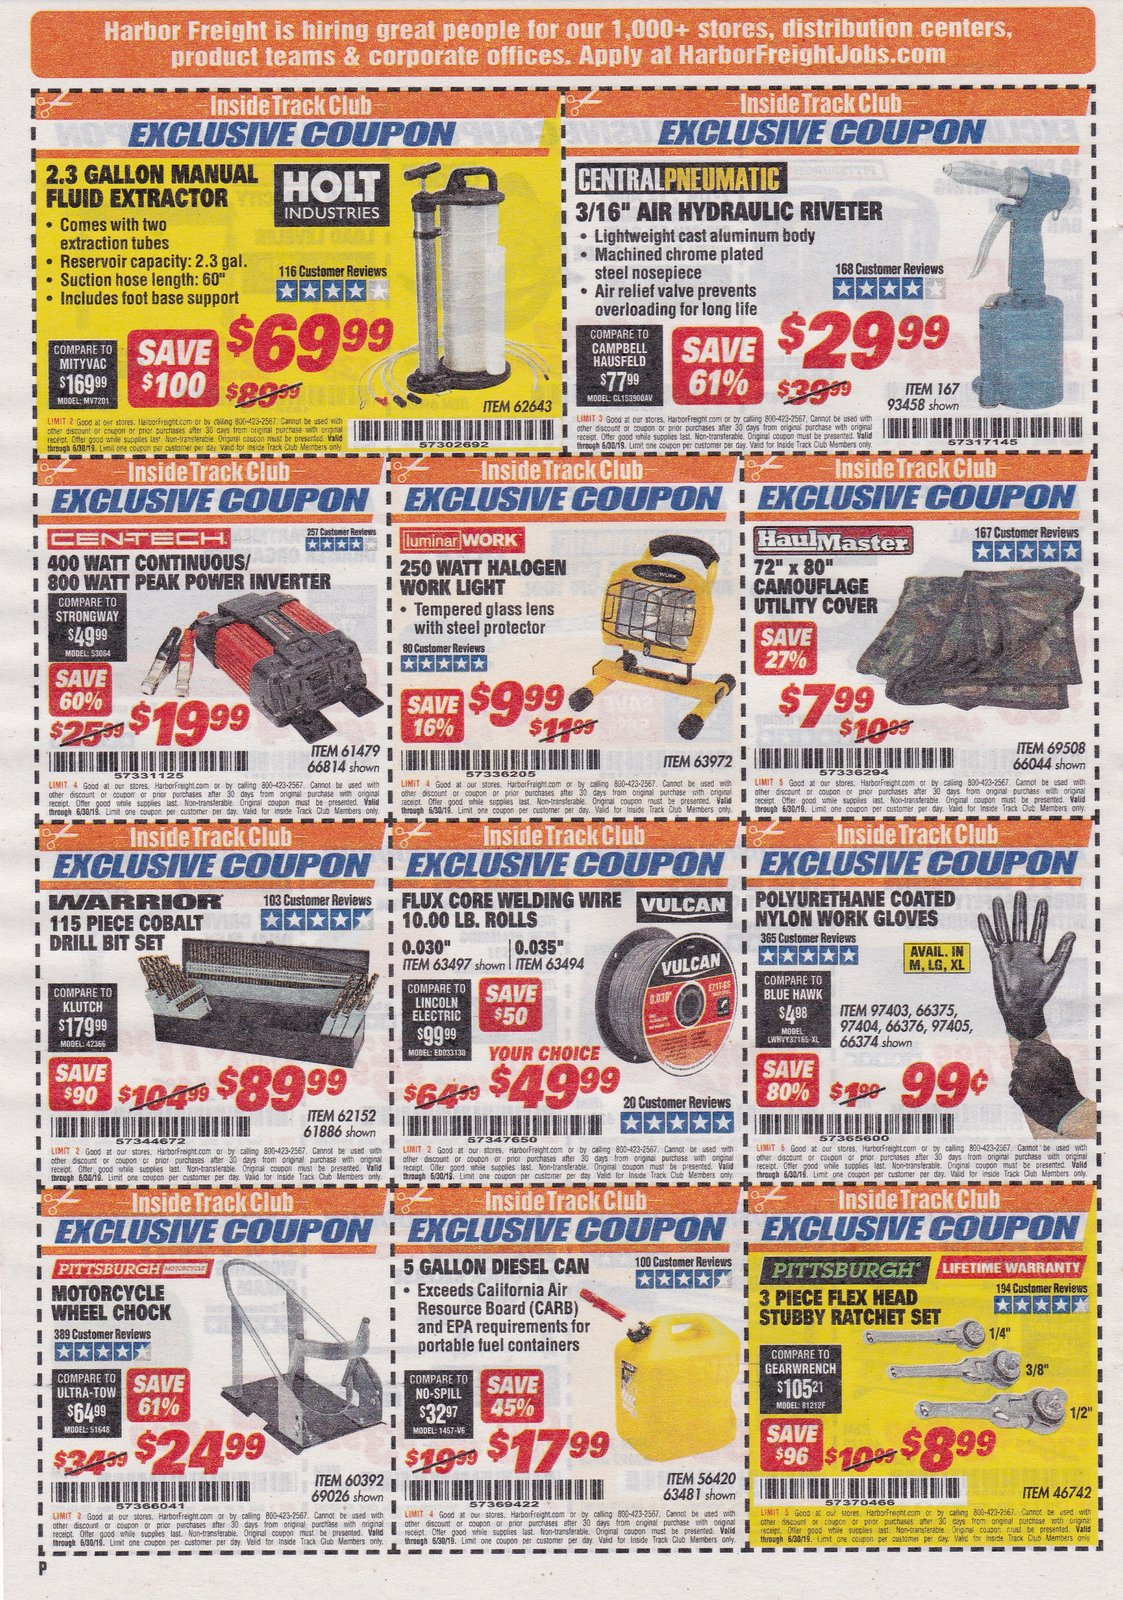 Like Harbor Freight Tools coupons? Try these...